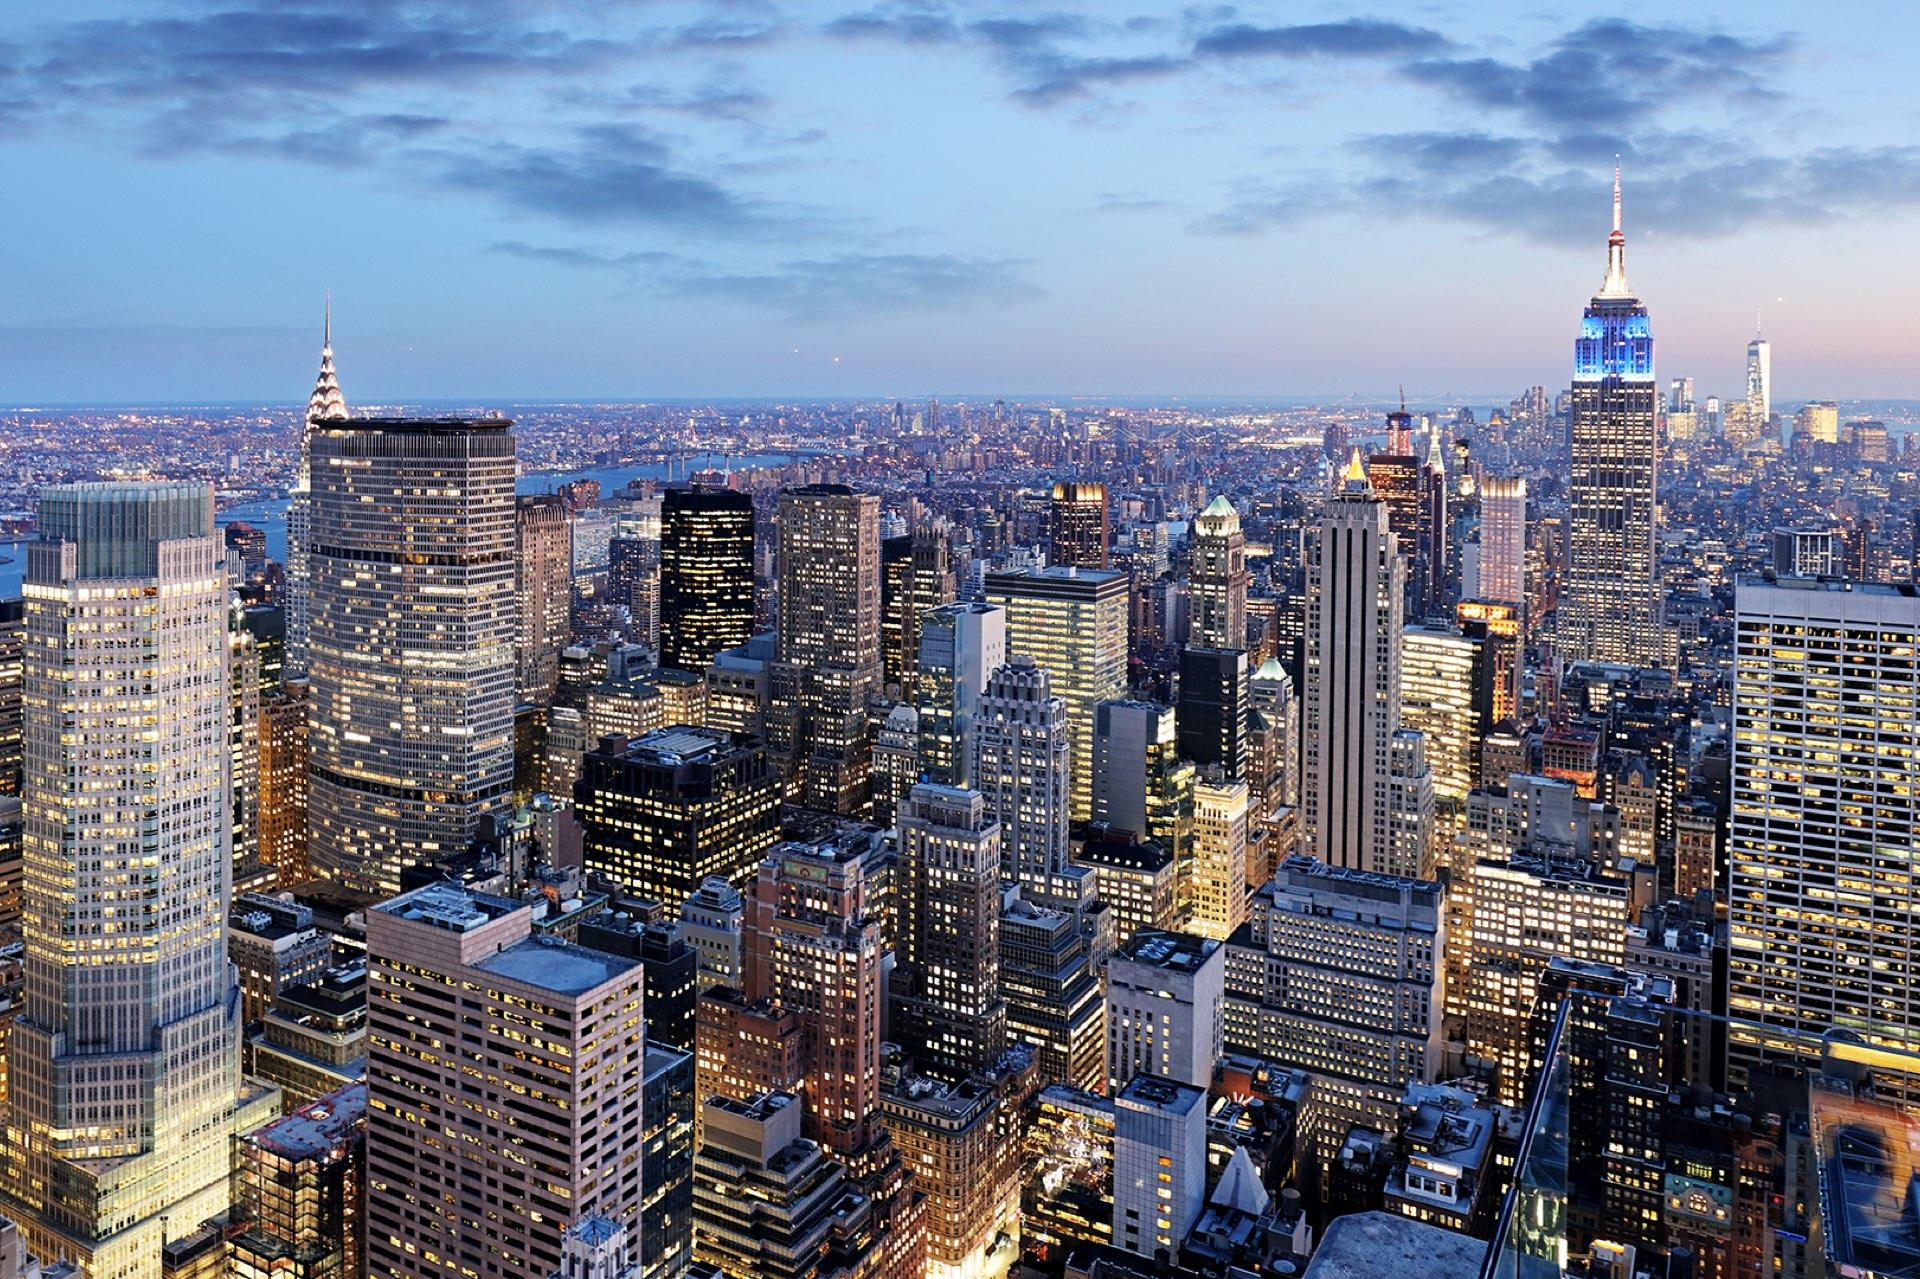 Vue aerienne de New York